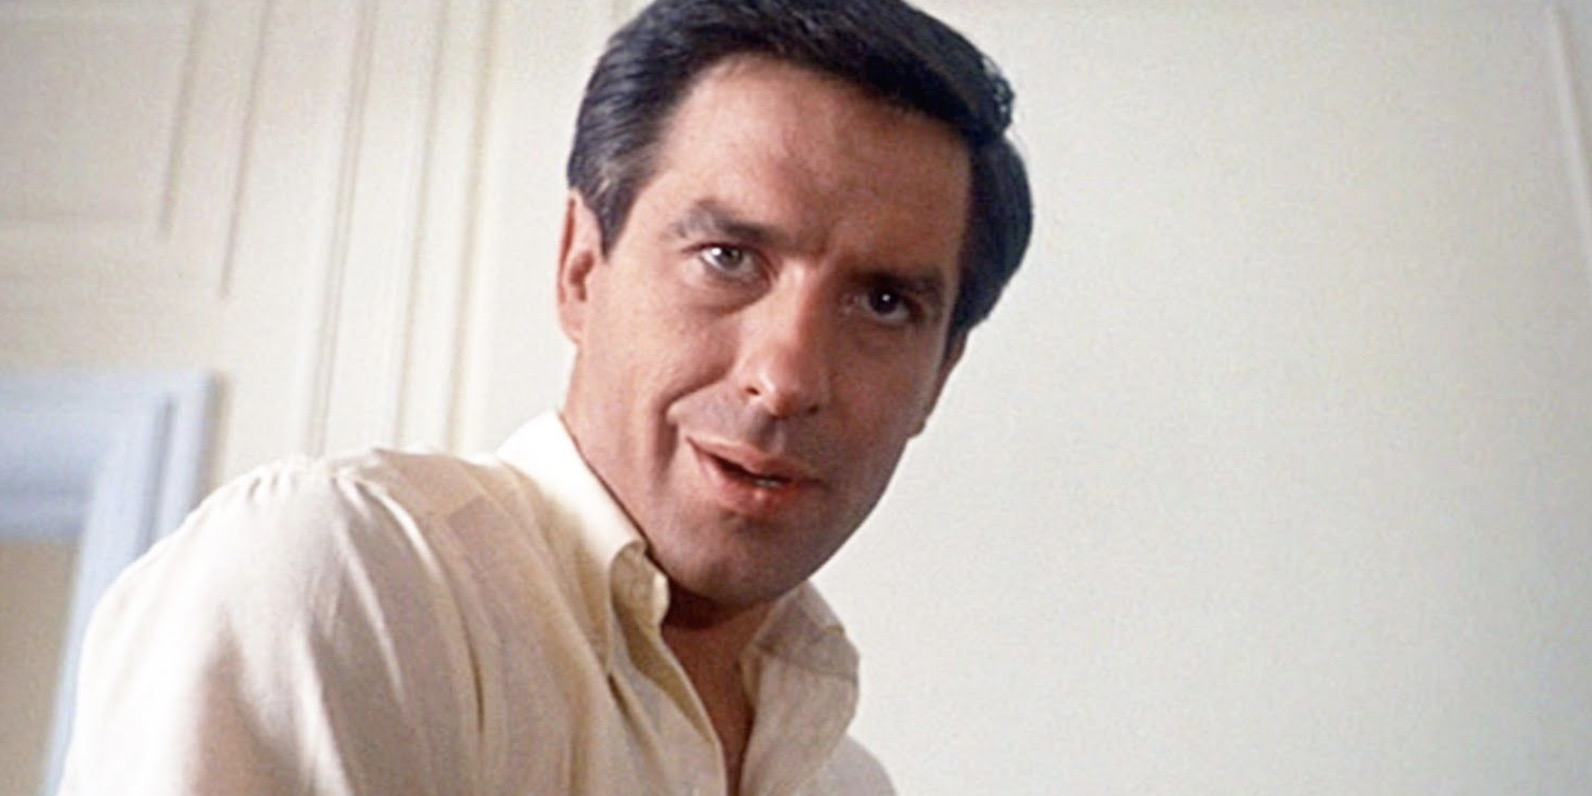 John Cassavetes, Rosemary's Baby, 60s male icon, movies